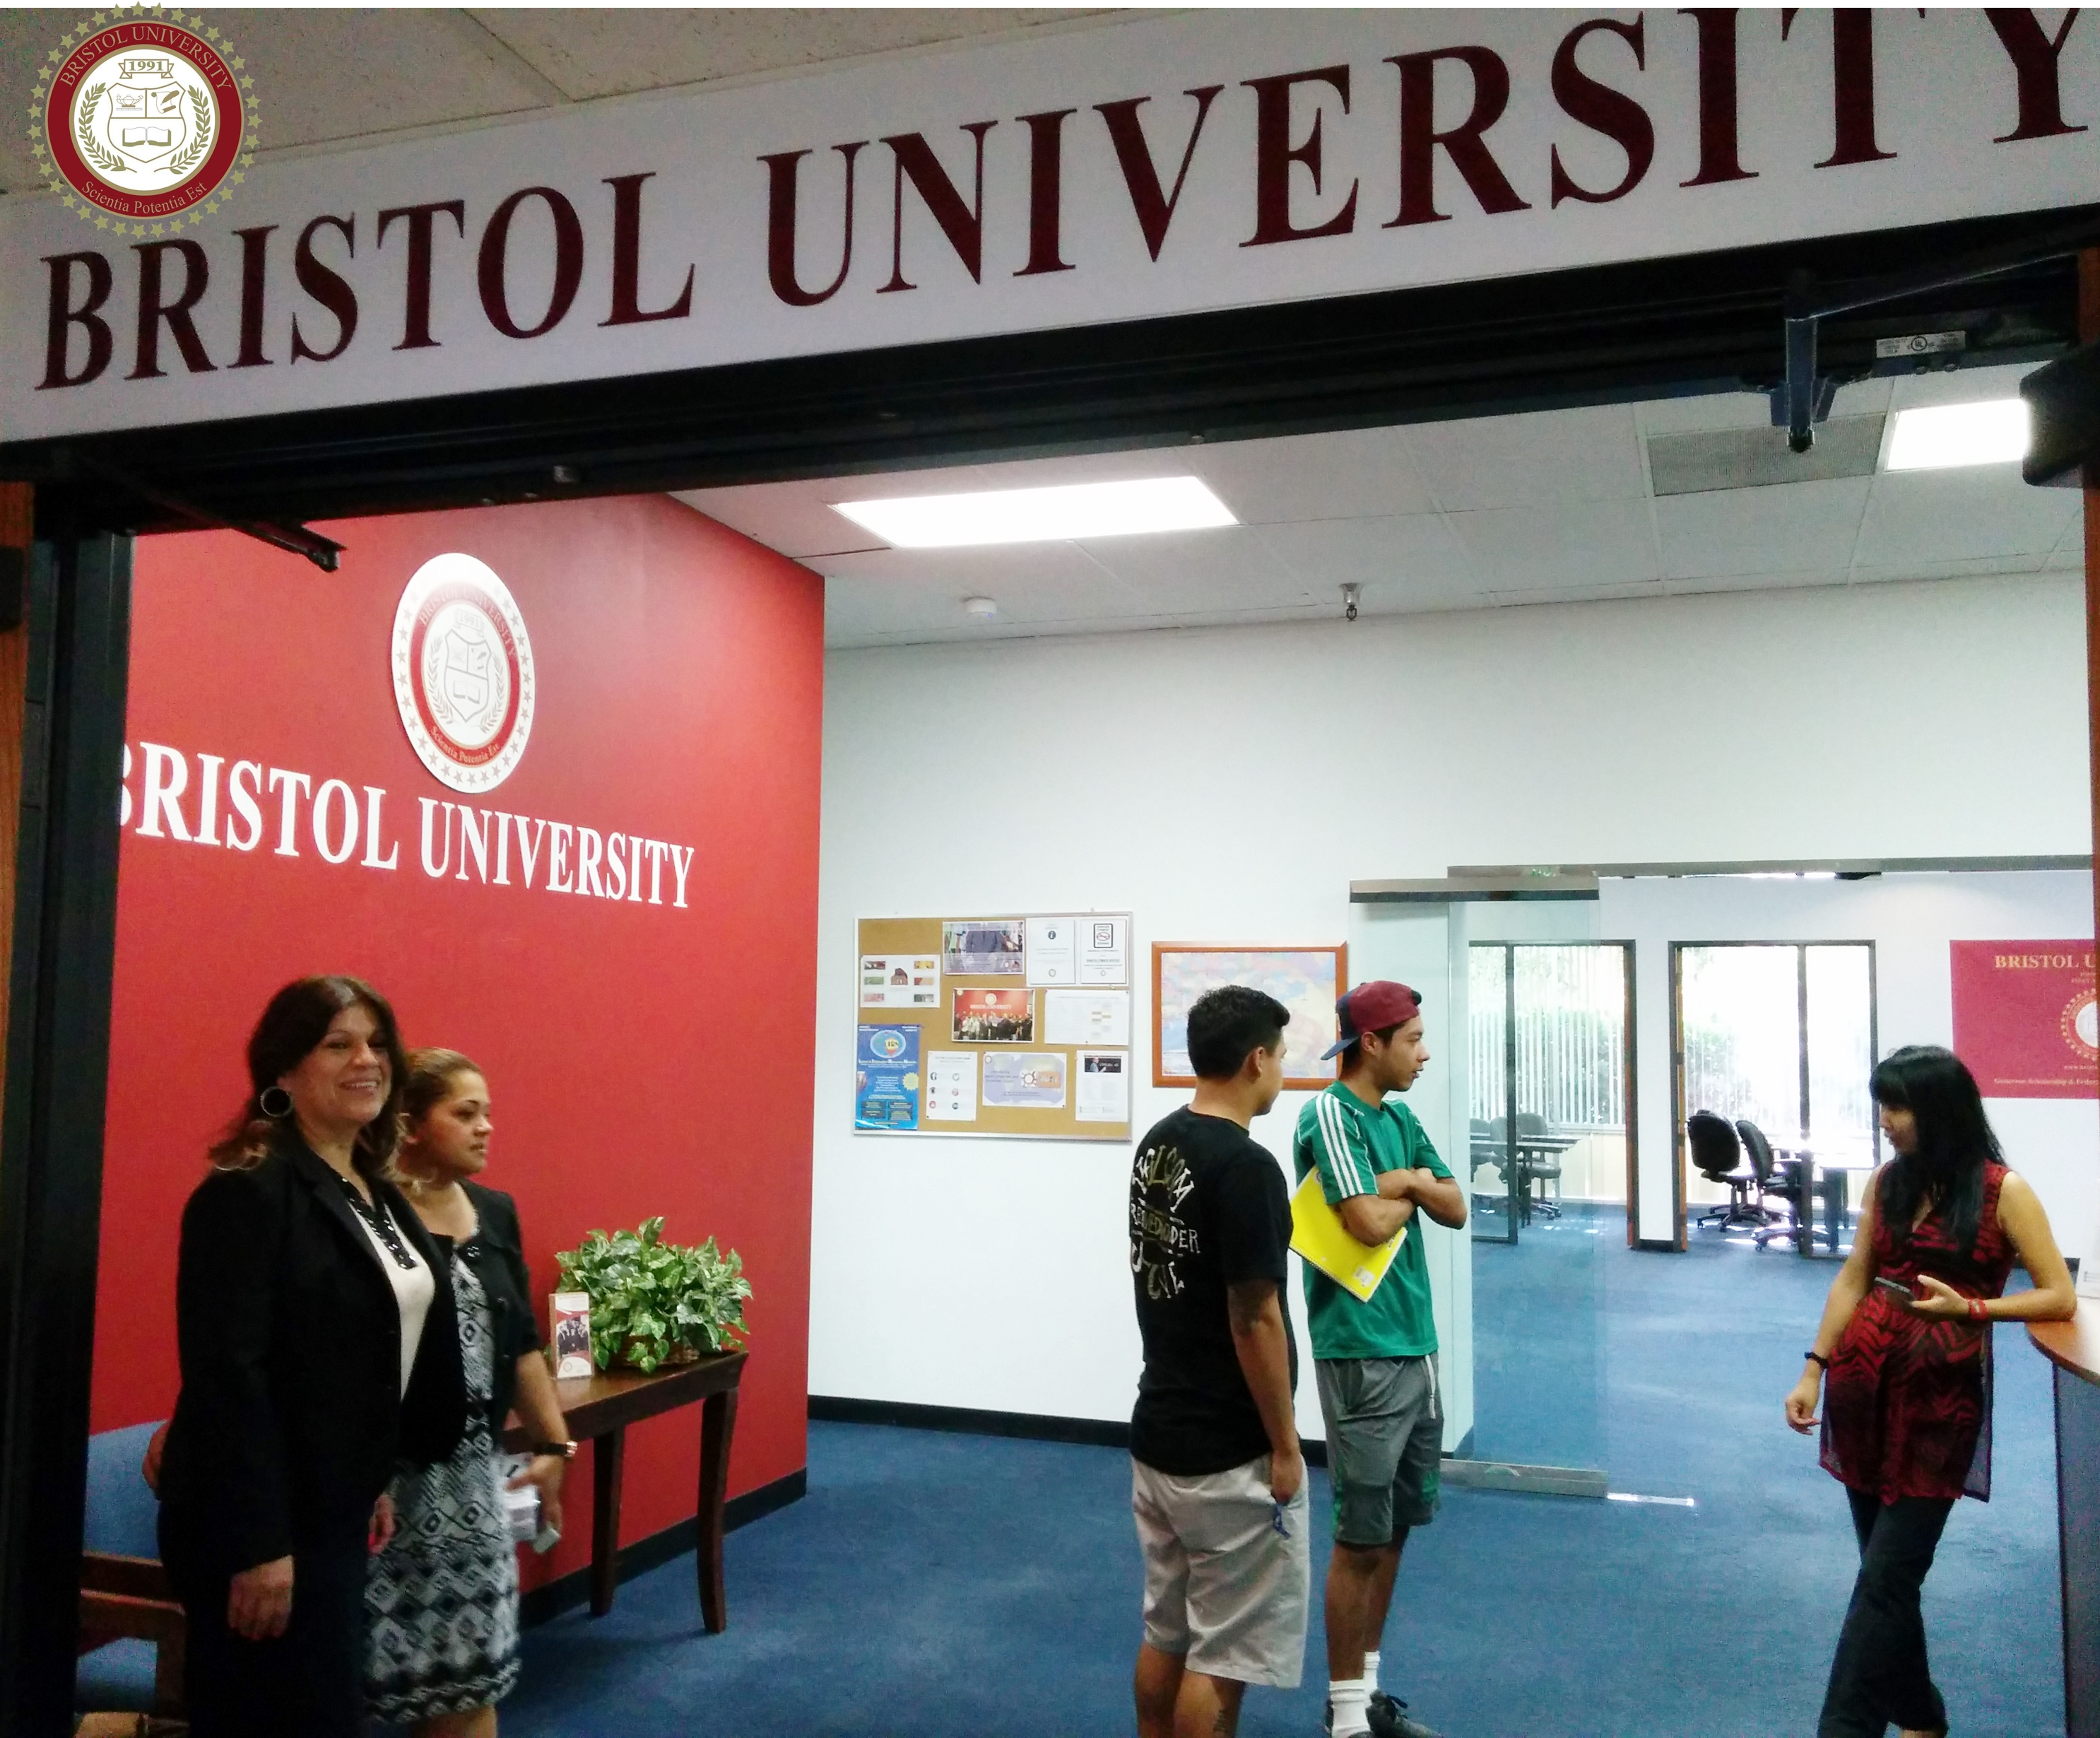 Controversial Accreditor Acics Tried To Shut Down A For Profit But